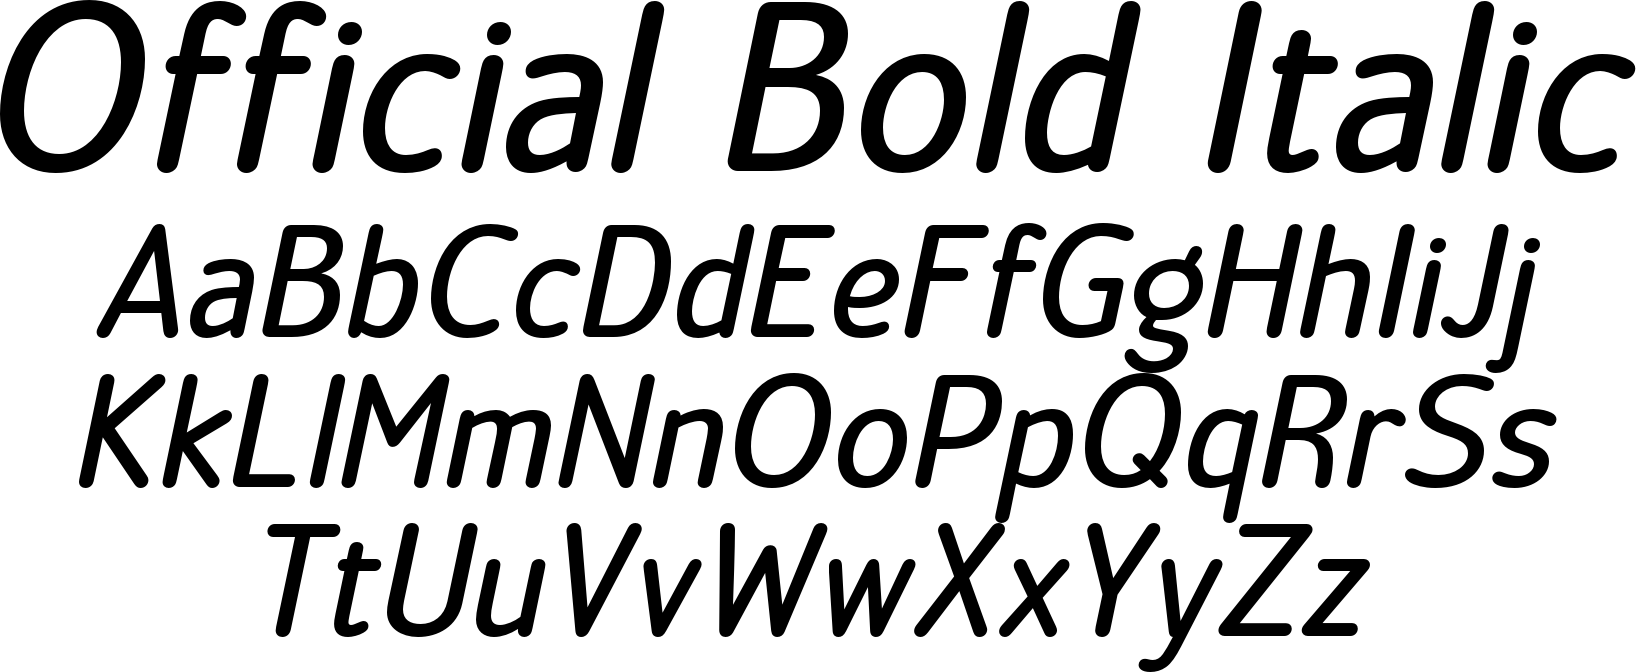 Official Bold Italic